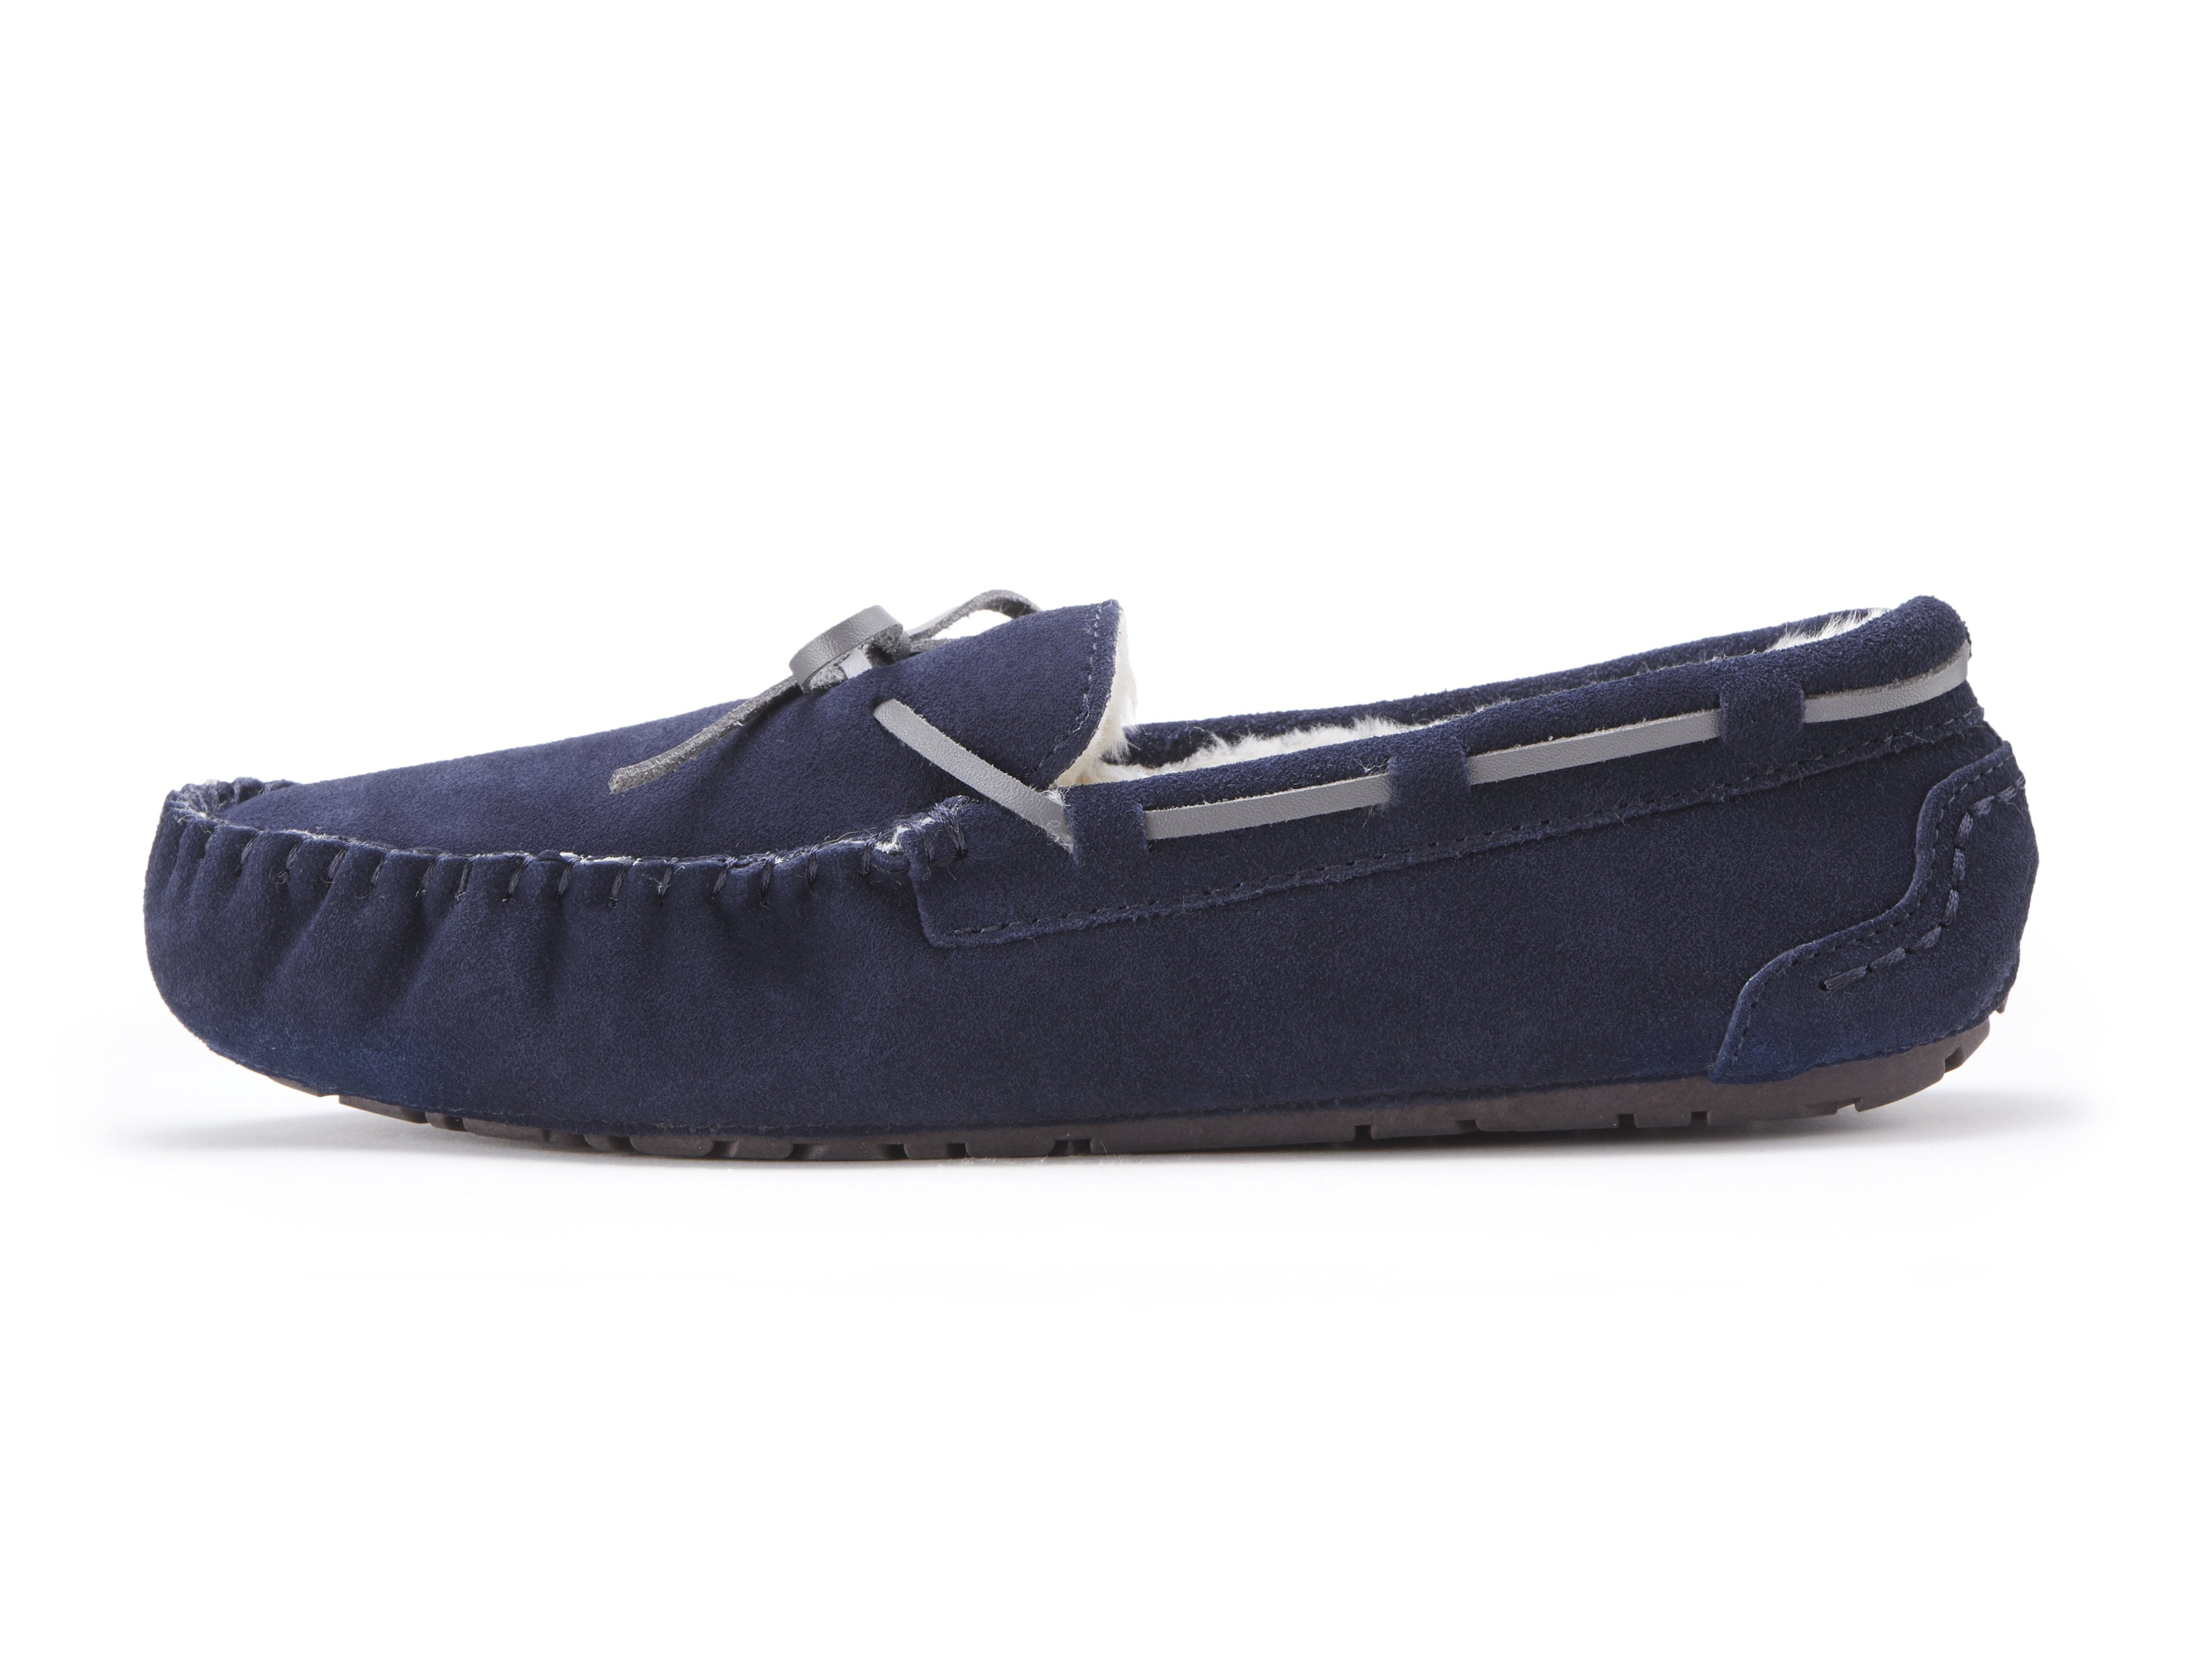 c5ad30d07b5 Mens Navy Suede Faux Fur Lined Slippers from Ugly Me London – Pretty ...